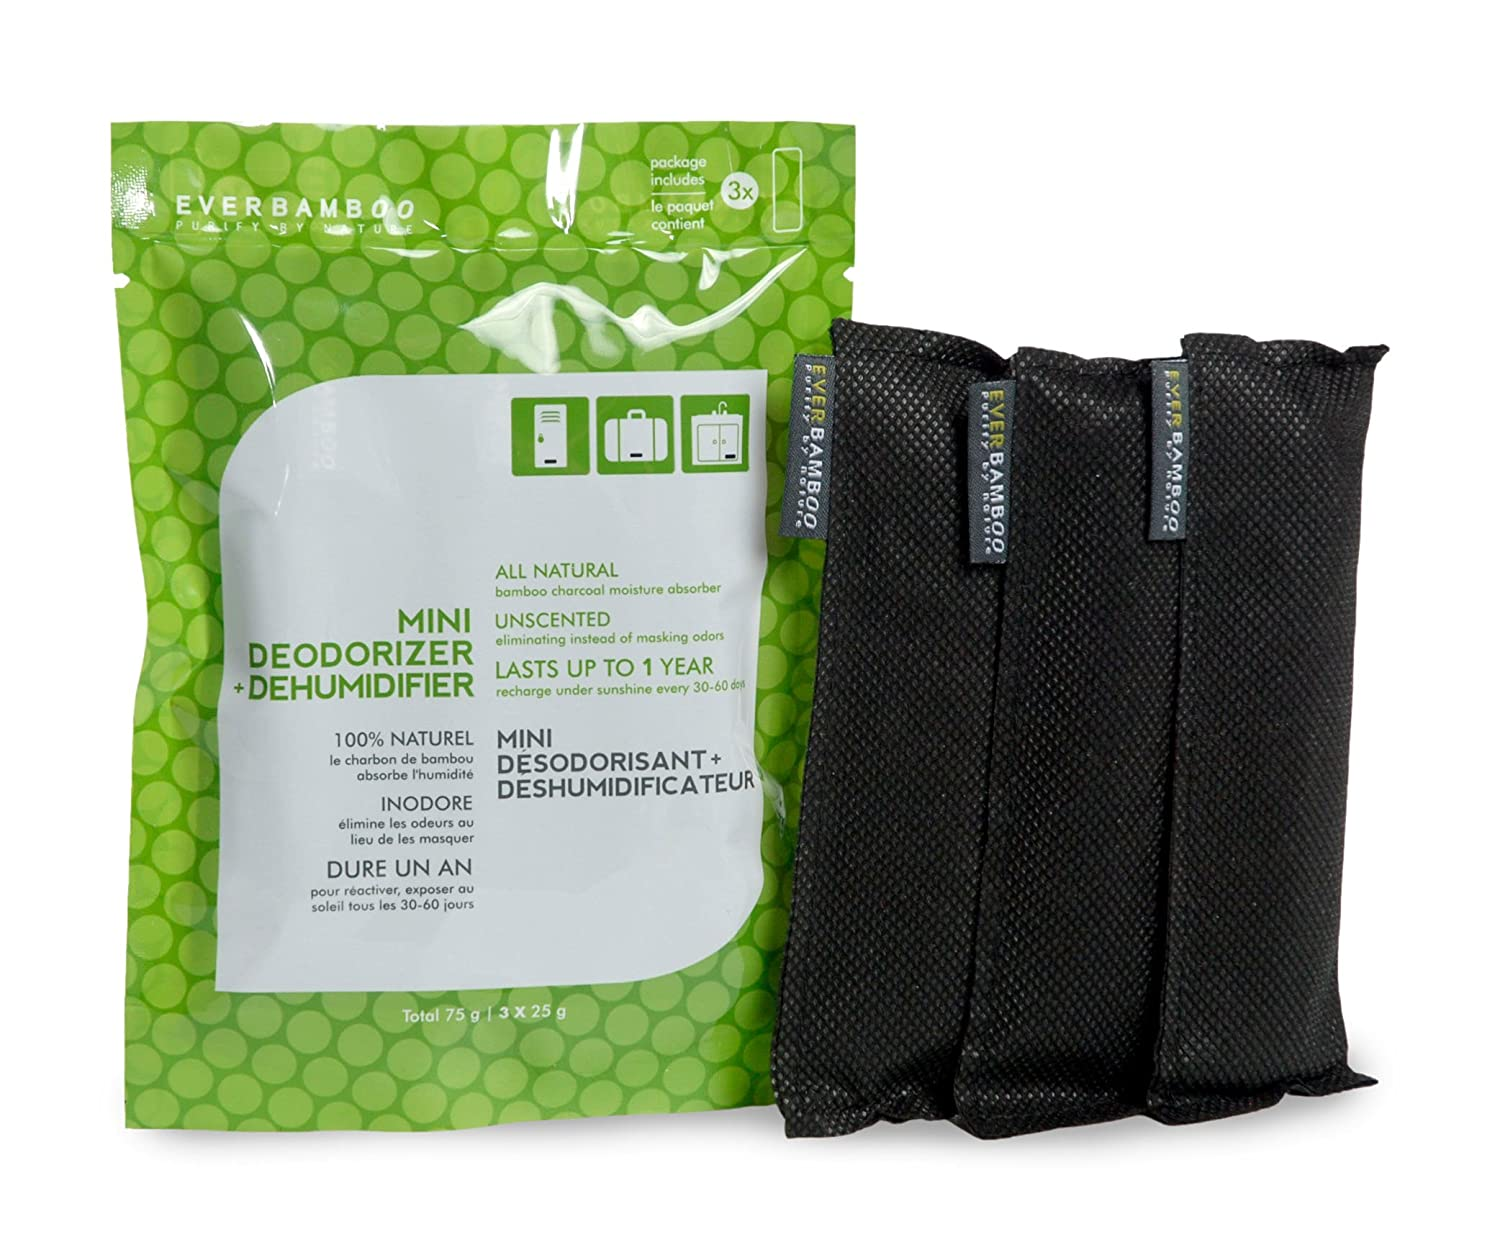 Ever Bamboo Mini Deodorizer & Dehumidifier Bag Set w/ Natural Bamboo Charcoal (3 x 25 g) (1) Ever Bamboo Inc.